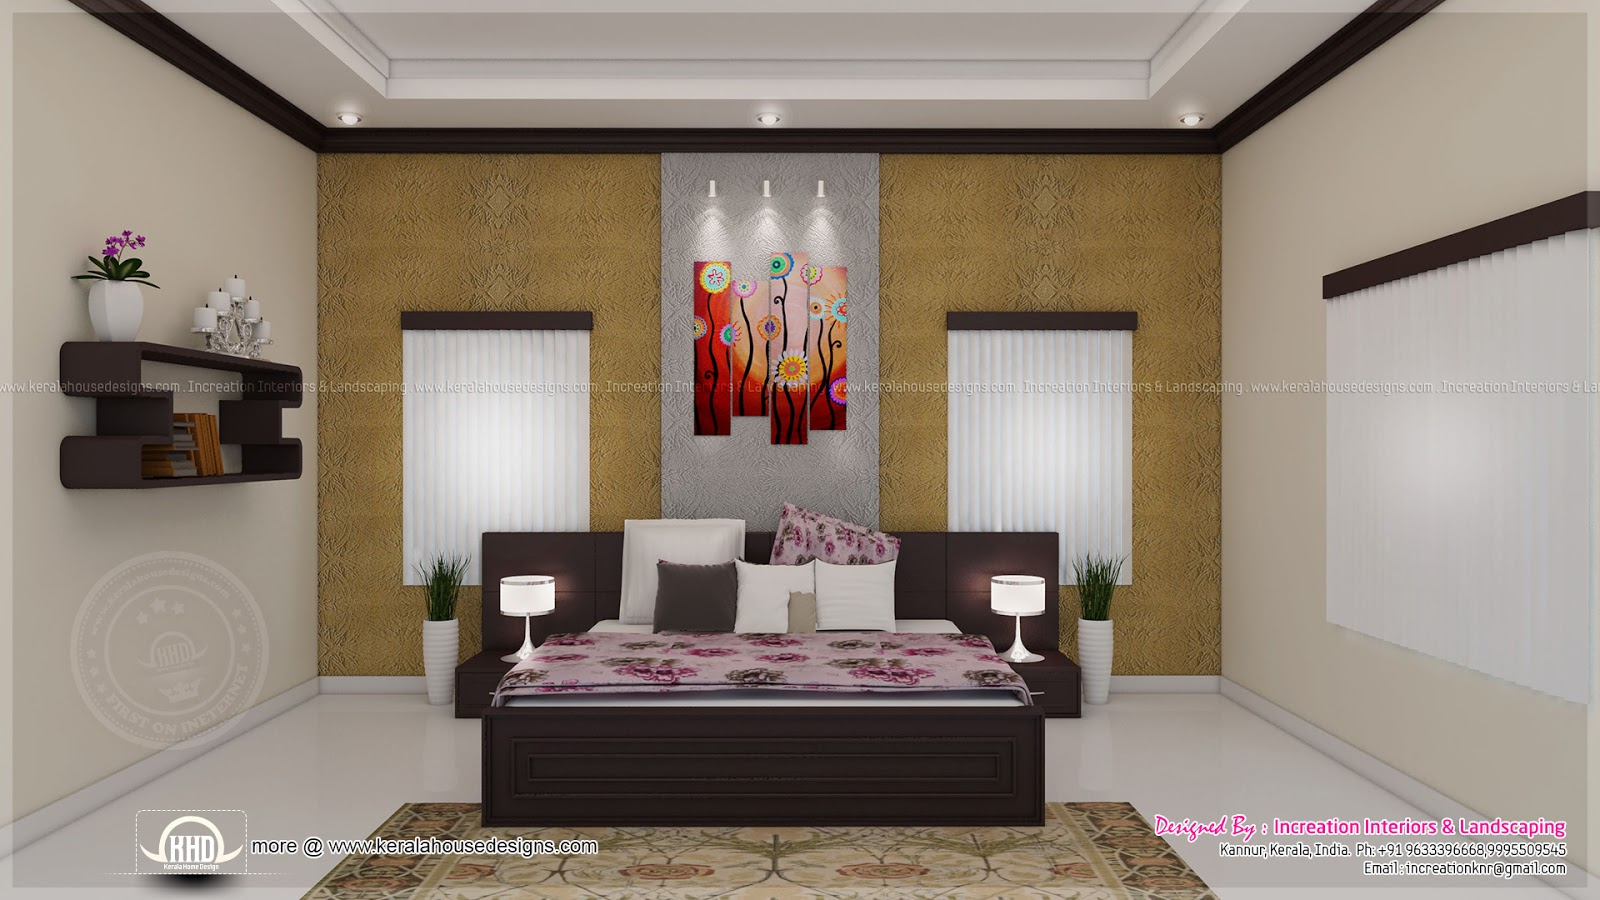 House interior ideas in 3d rendering kerala home design Home interior design indian style